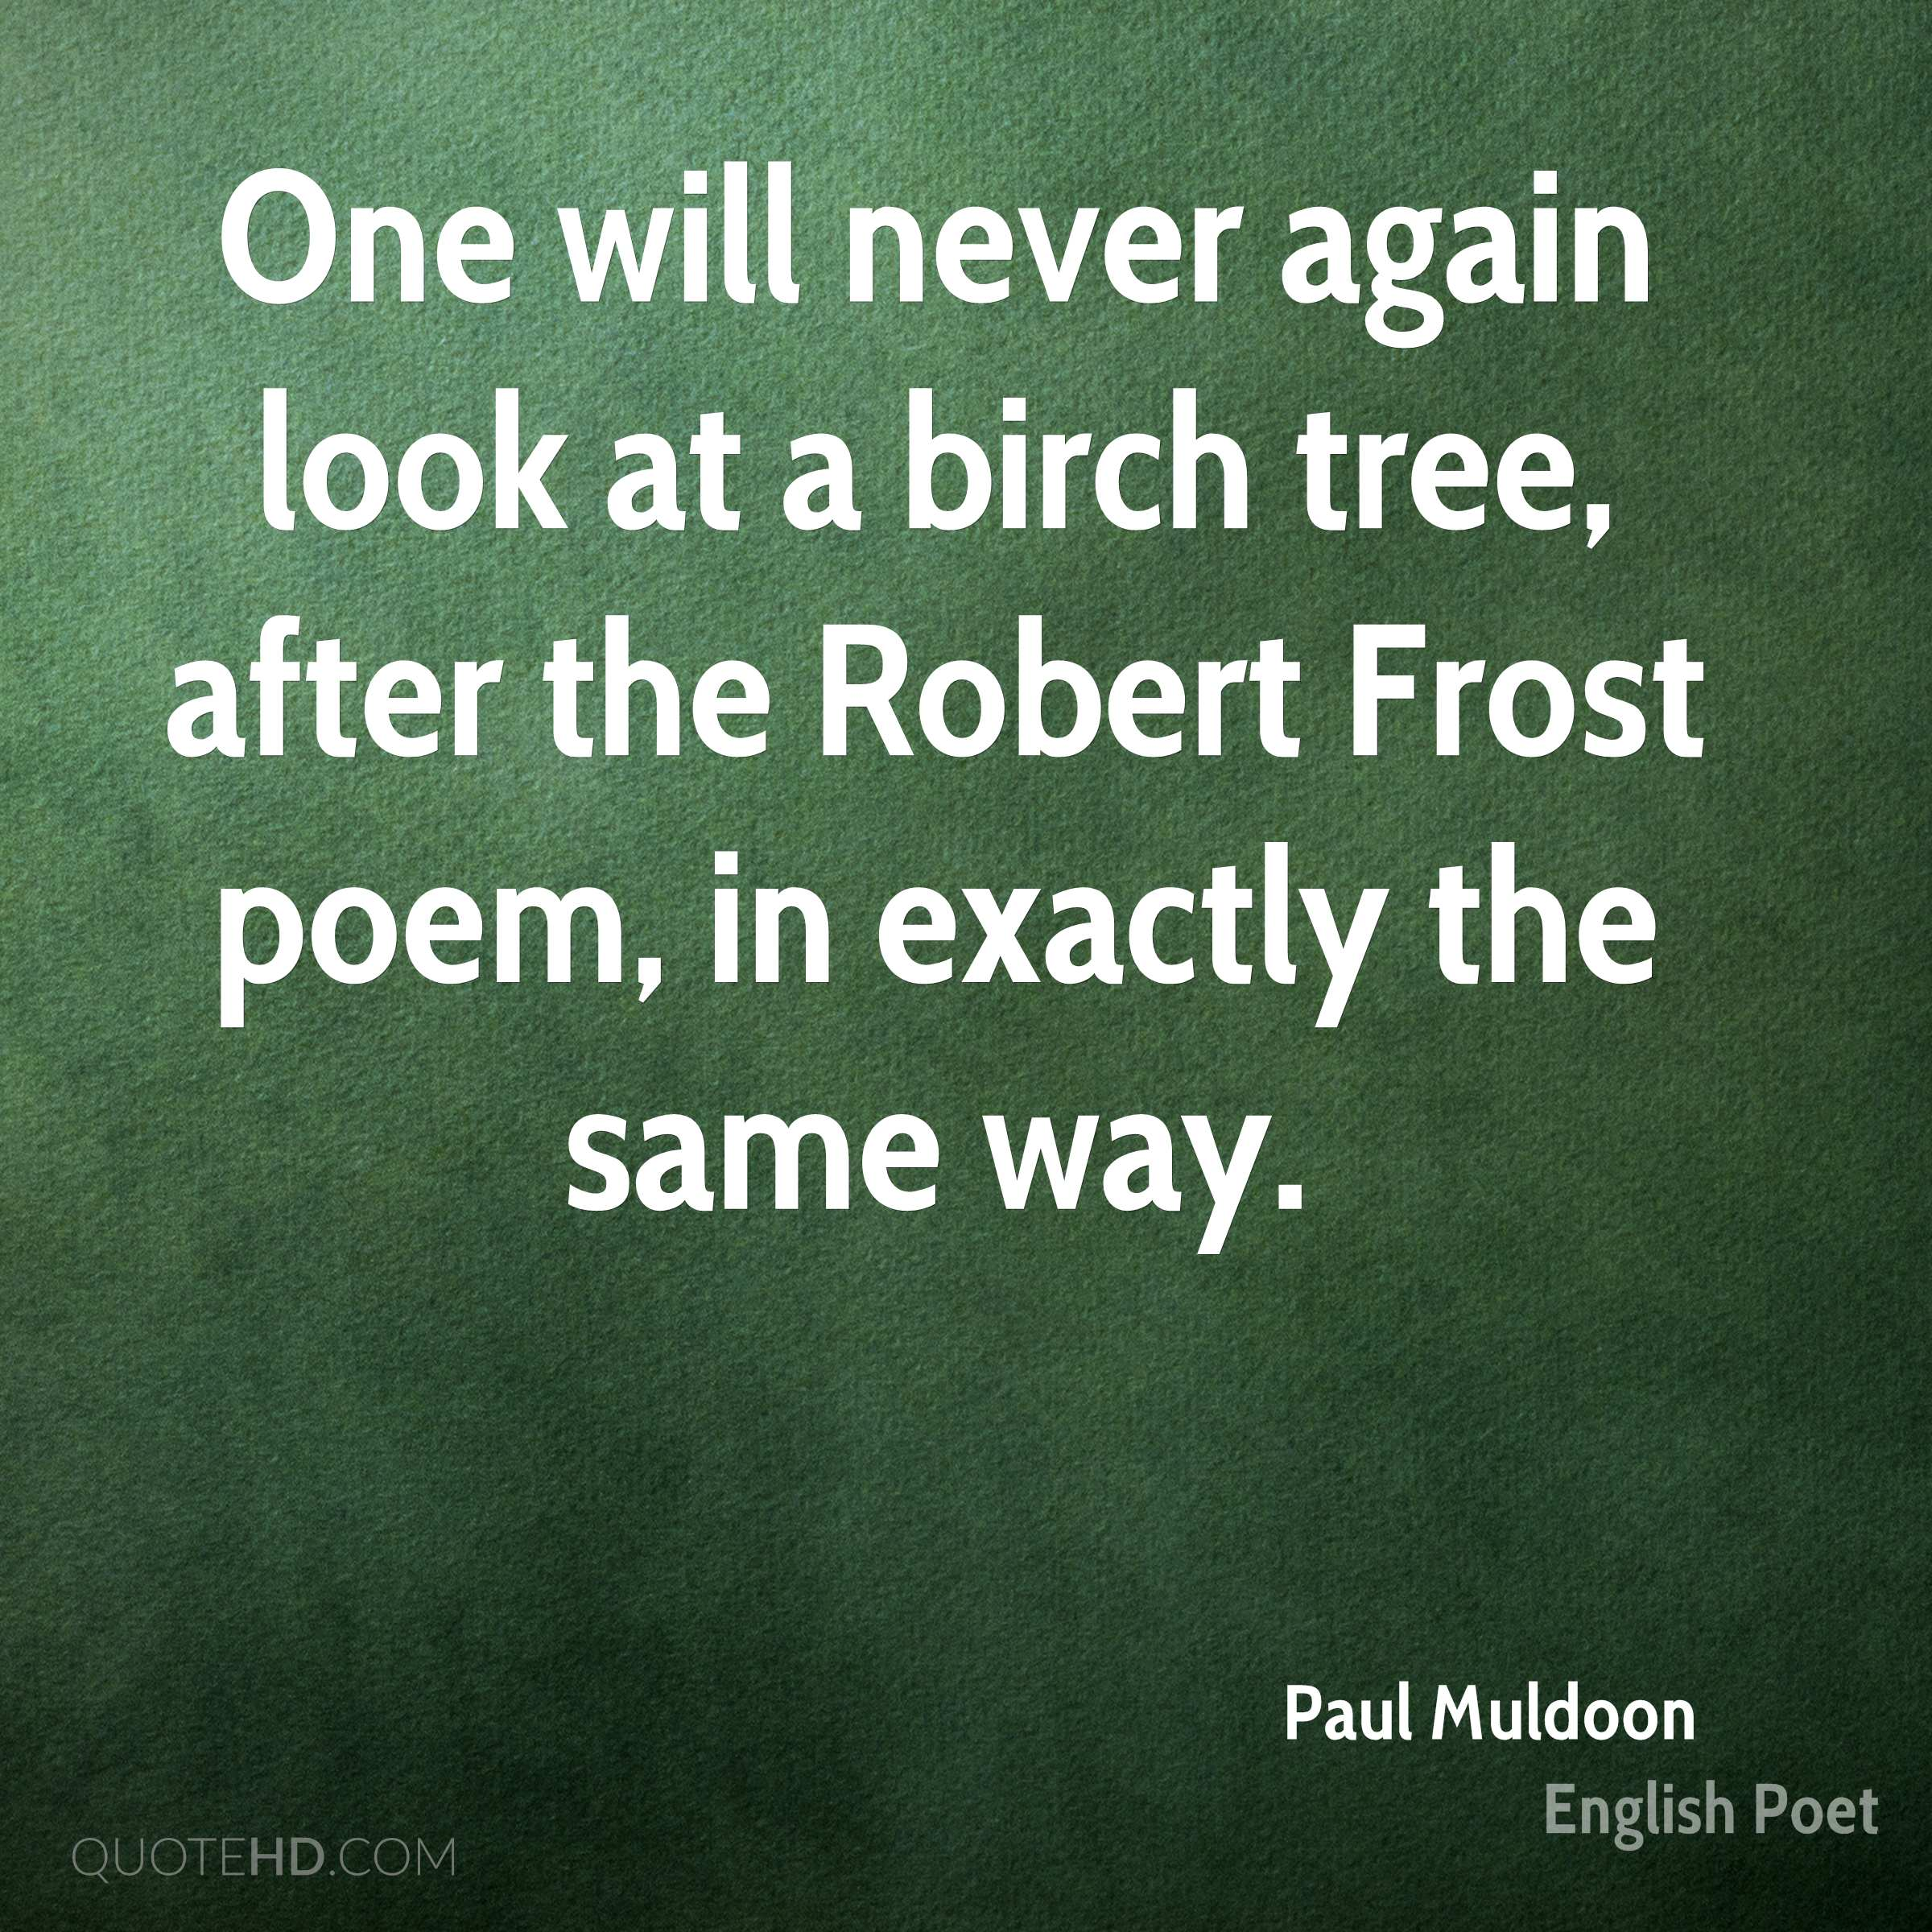 Paul Muldoon Poetry Quotes | QuoteHD